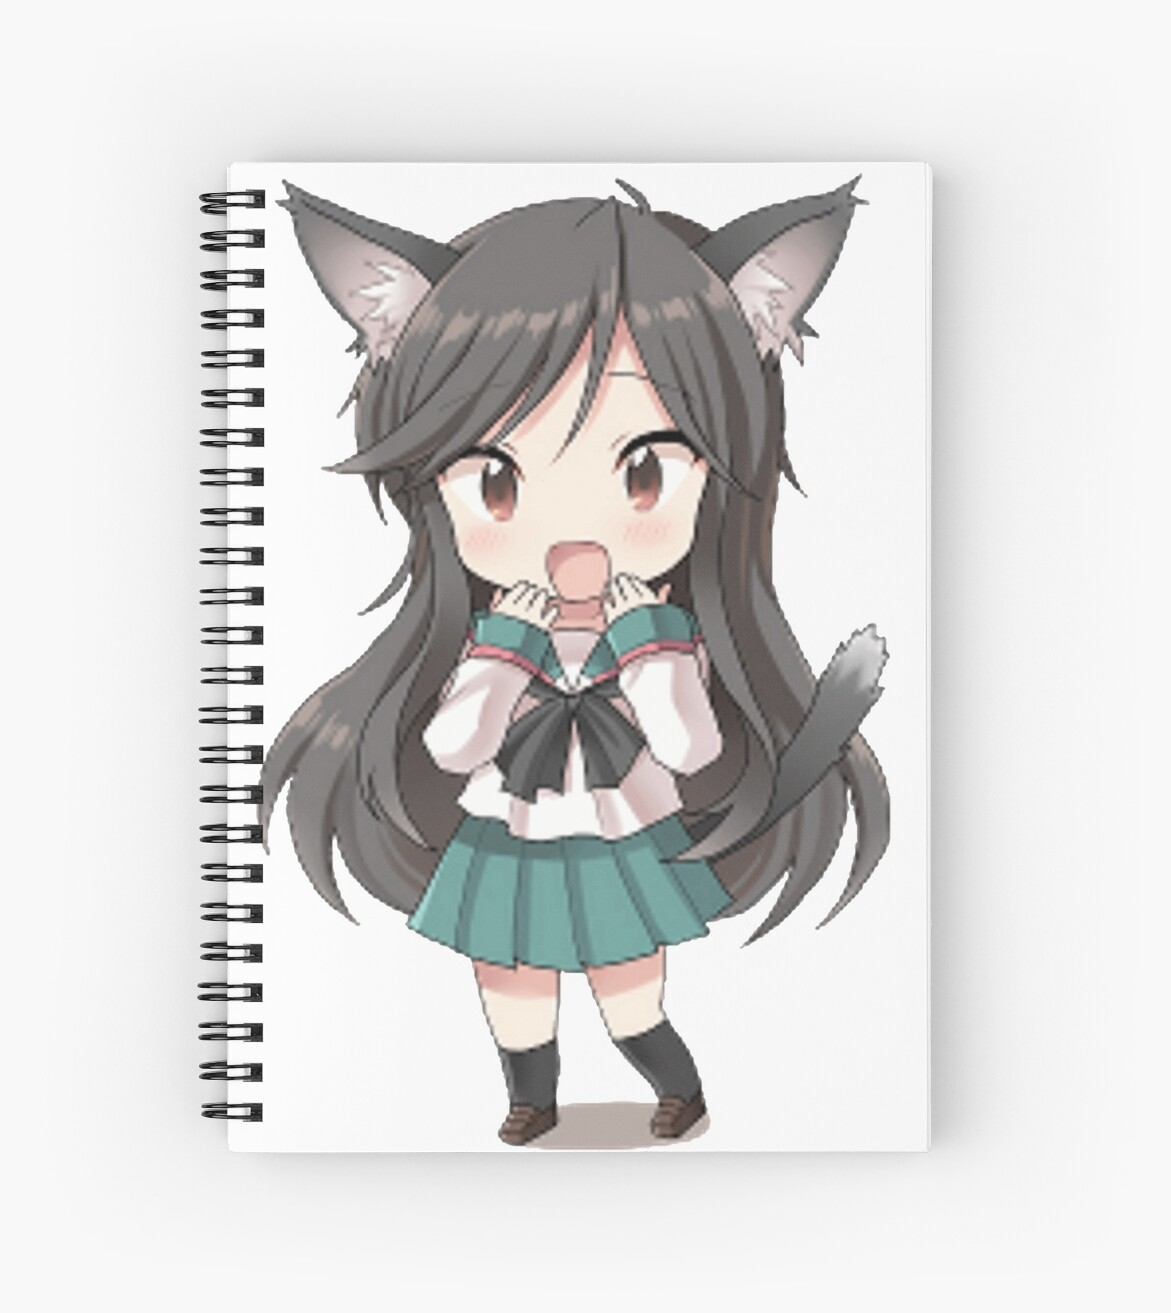 Wall Decor Stickers For Girls Quot Anime Cat Girl Chibi Quot Spiral Notebooks By Xithyll Redbubble